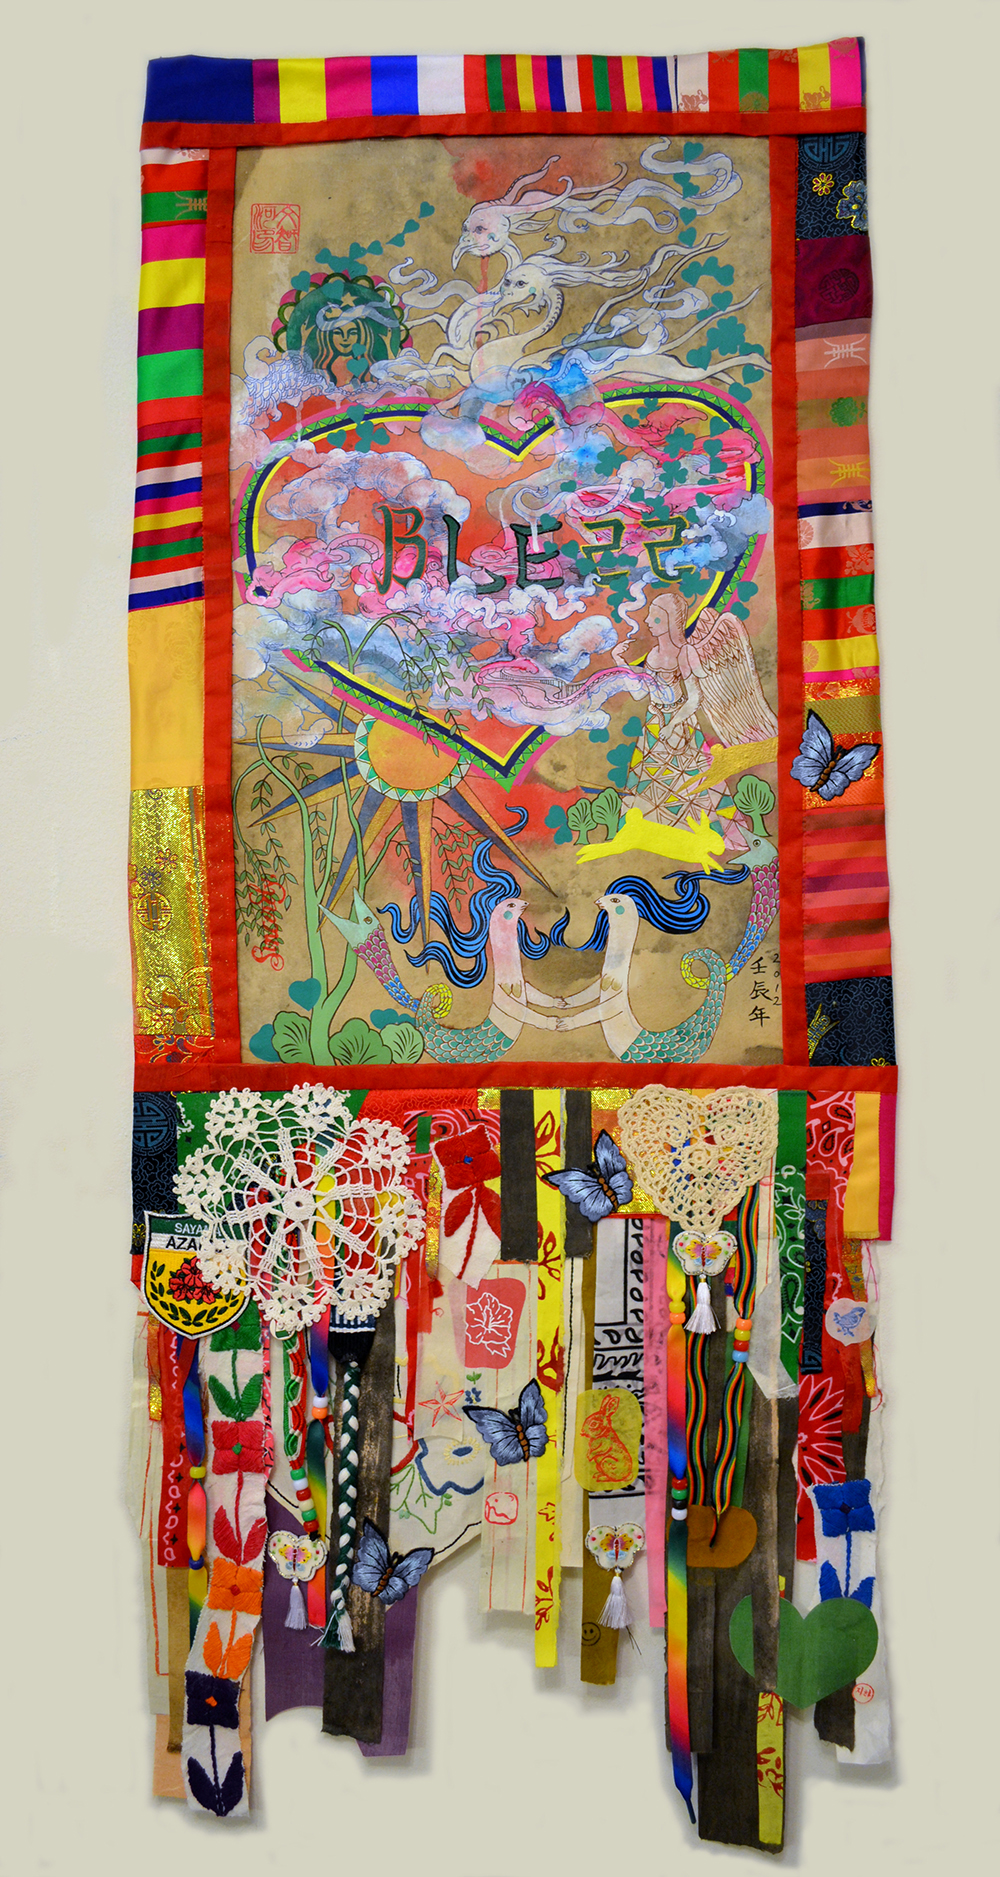 "Jiha Moon  Double Bless  Ink and acrylic on Hanji paper, shoelaces, doily, pony beads, quilted border 41"" x 16.75"" 2012"